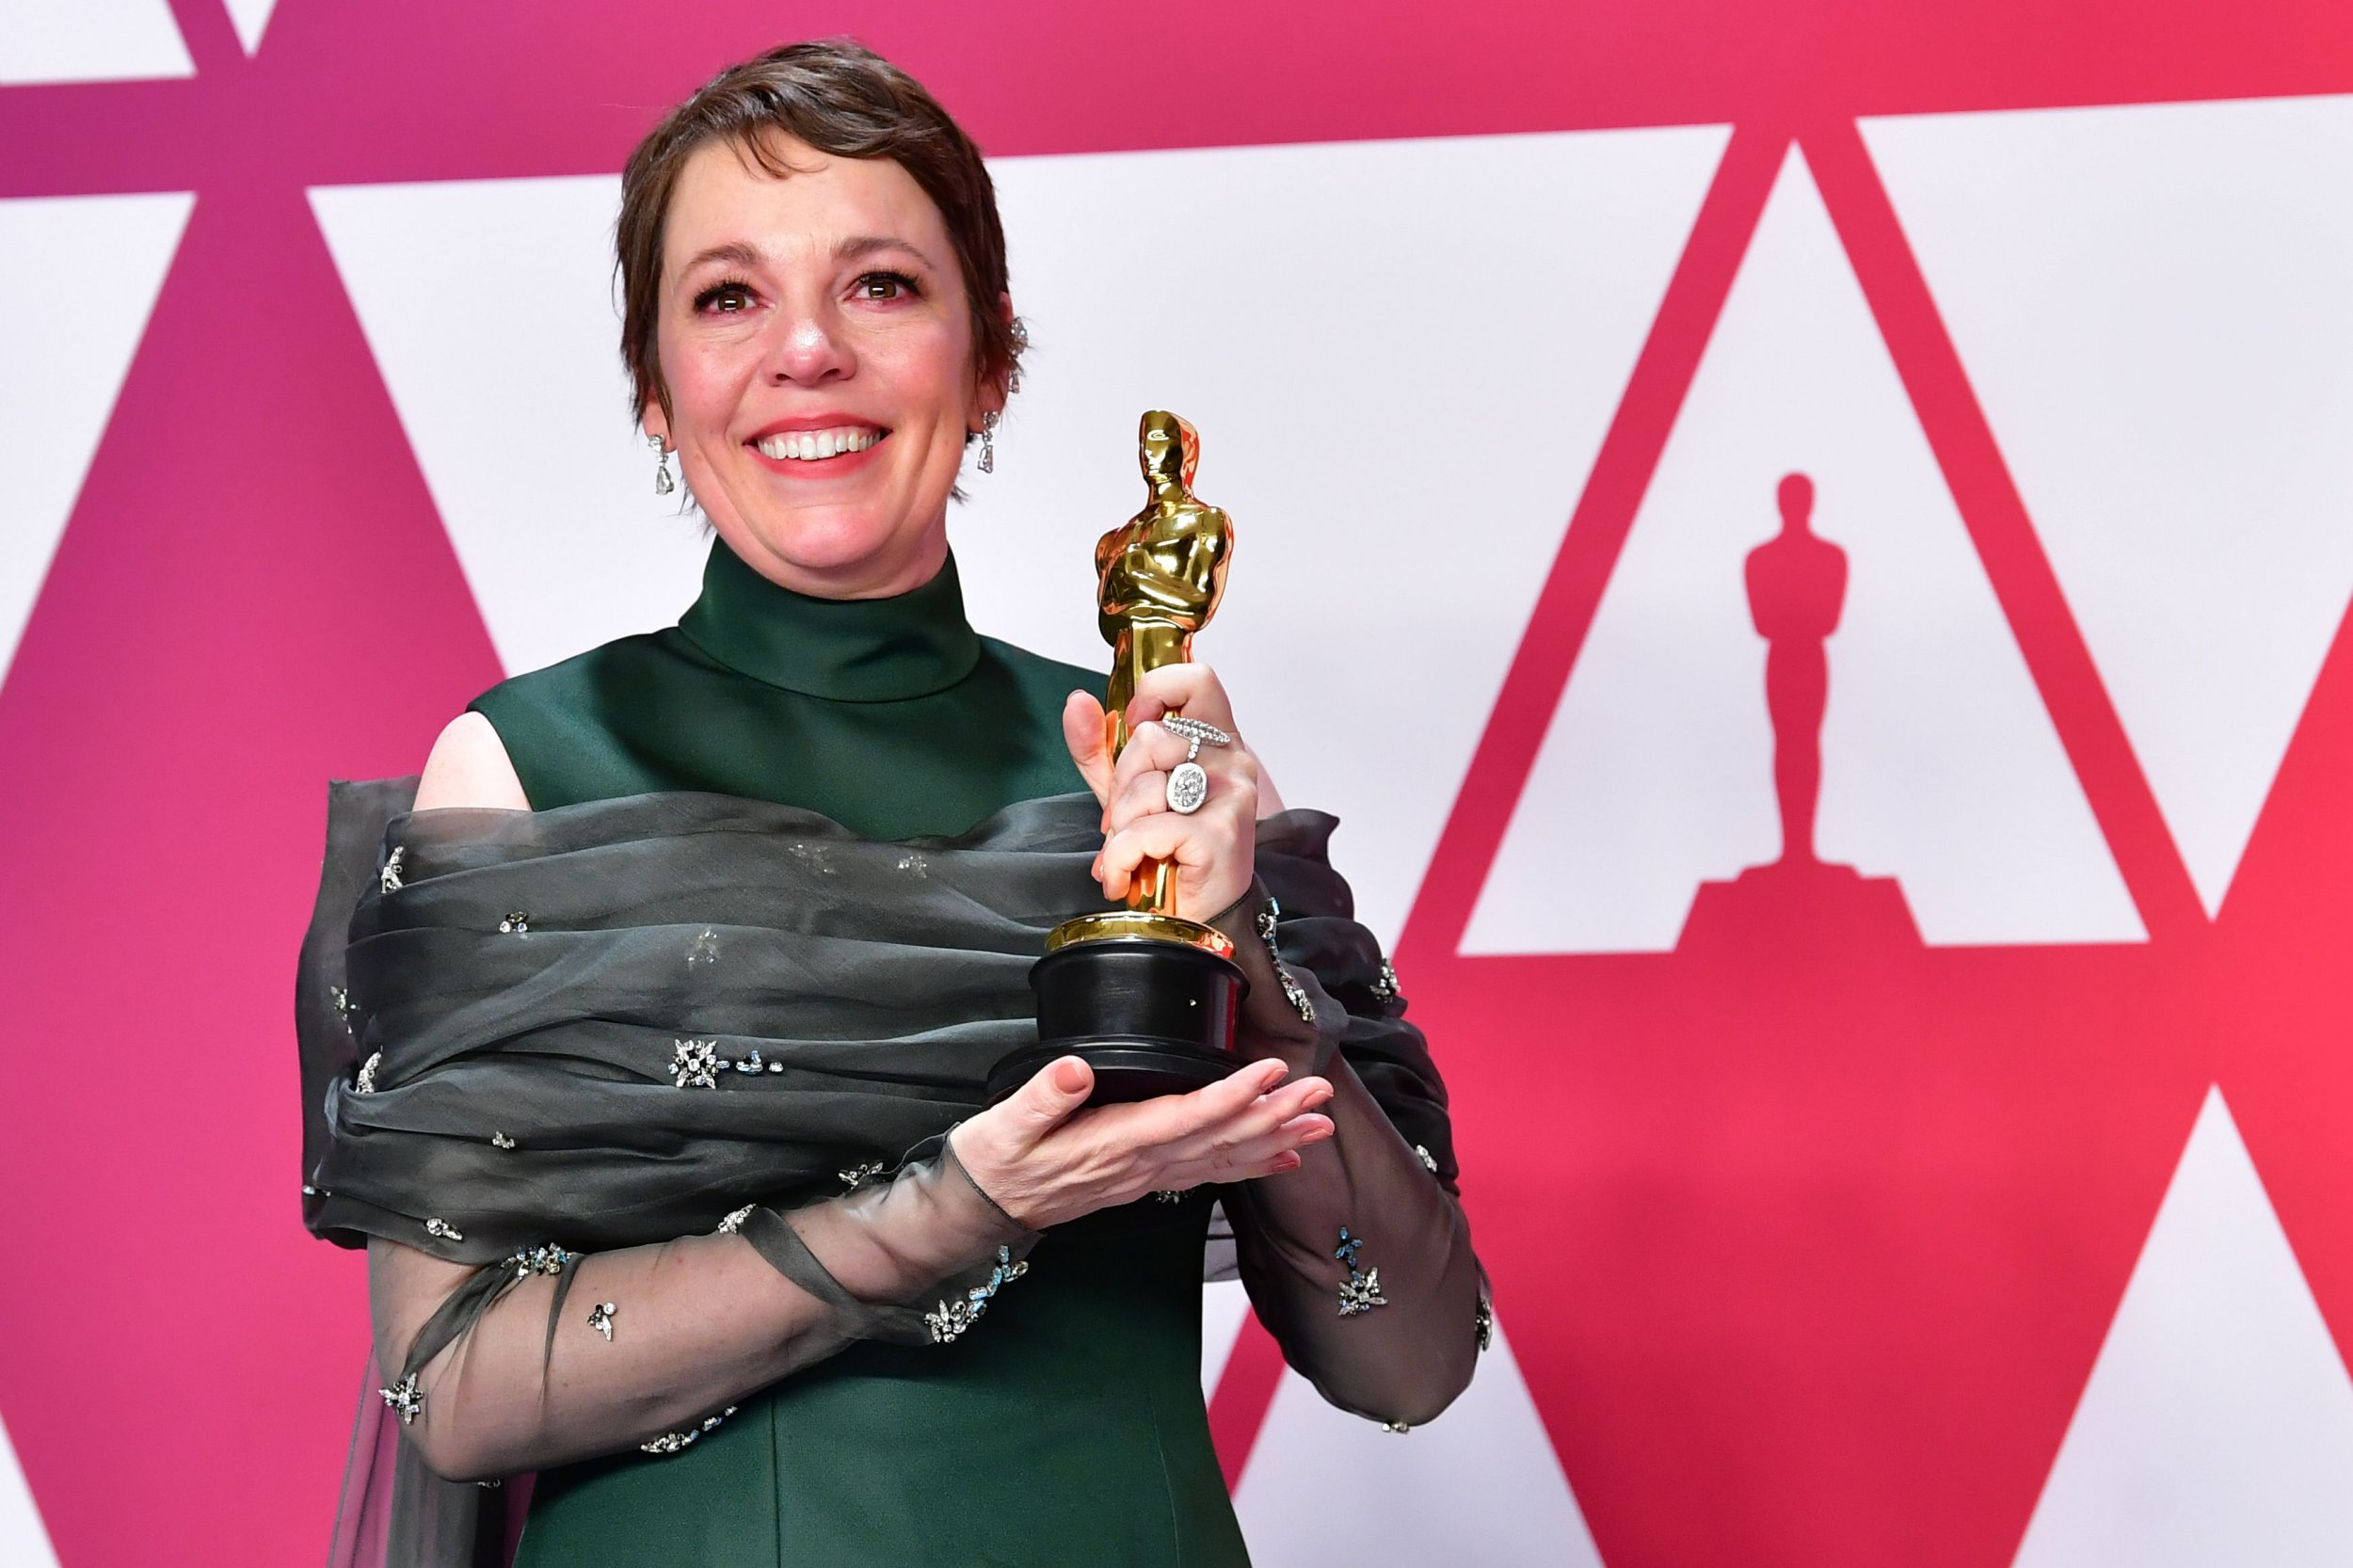 Olivia Colman rumoured to play James Bond after incredible Oscars win